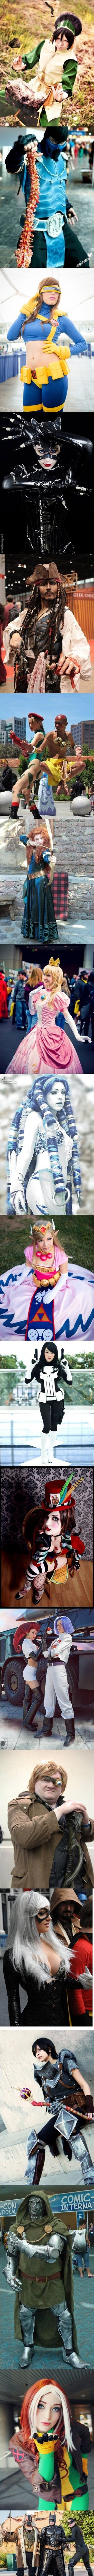 The best of Cosplay. .. How to be a good male cosplayer: Be very accurate How to be a good female cosplayer: Show cleavage